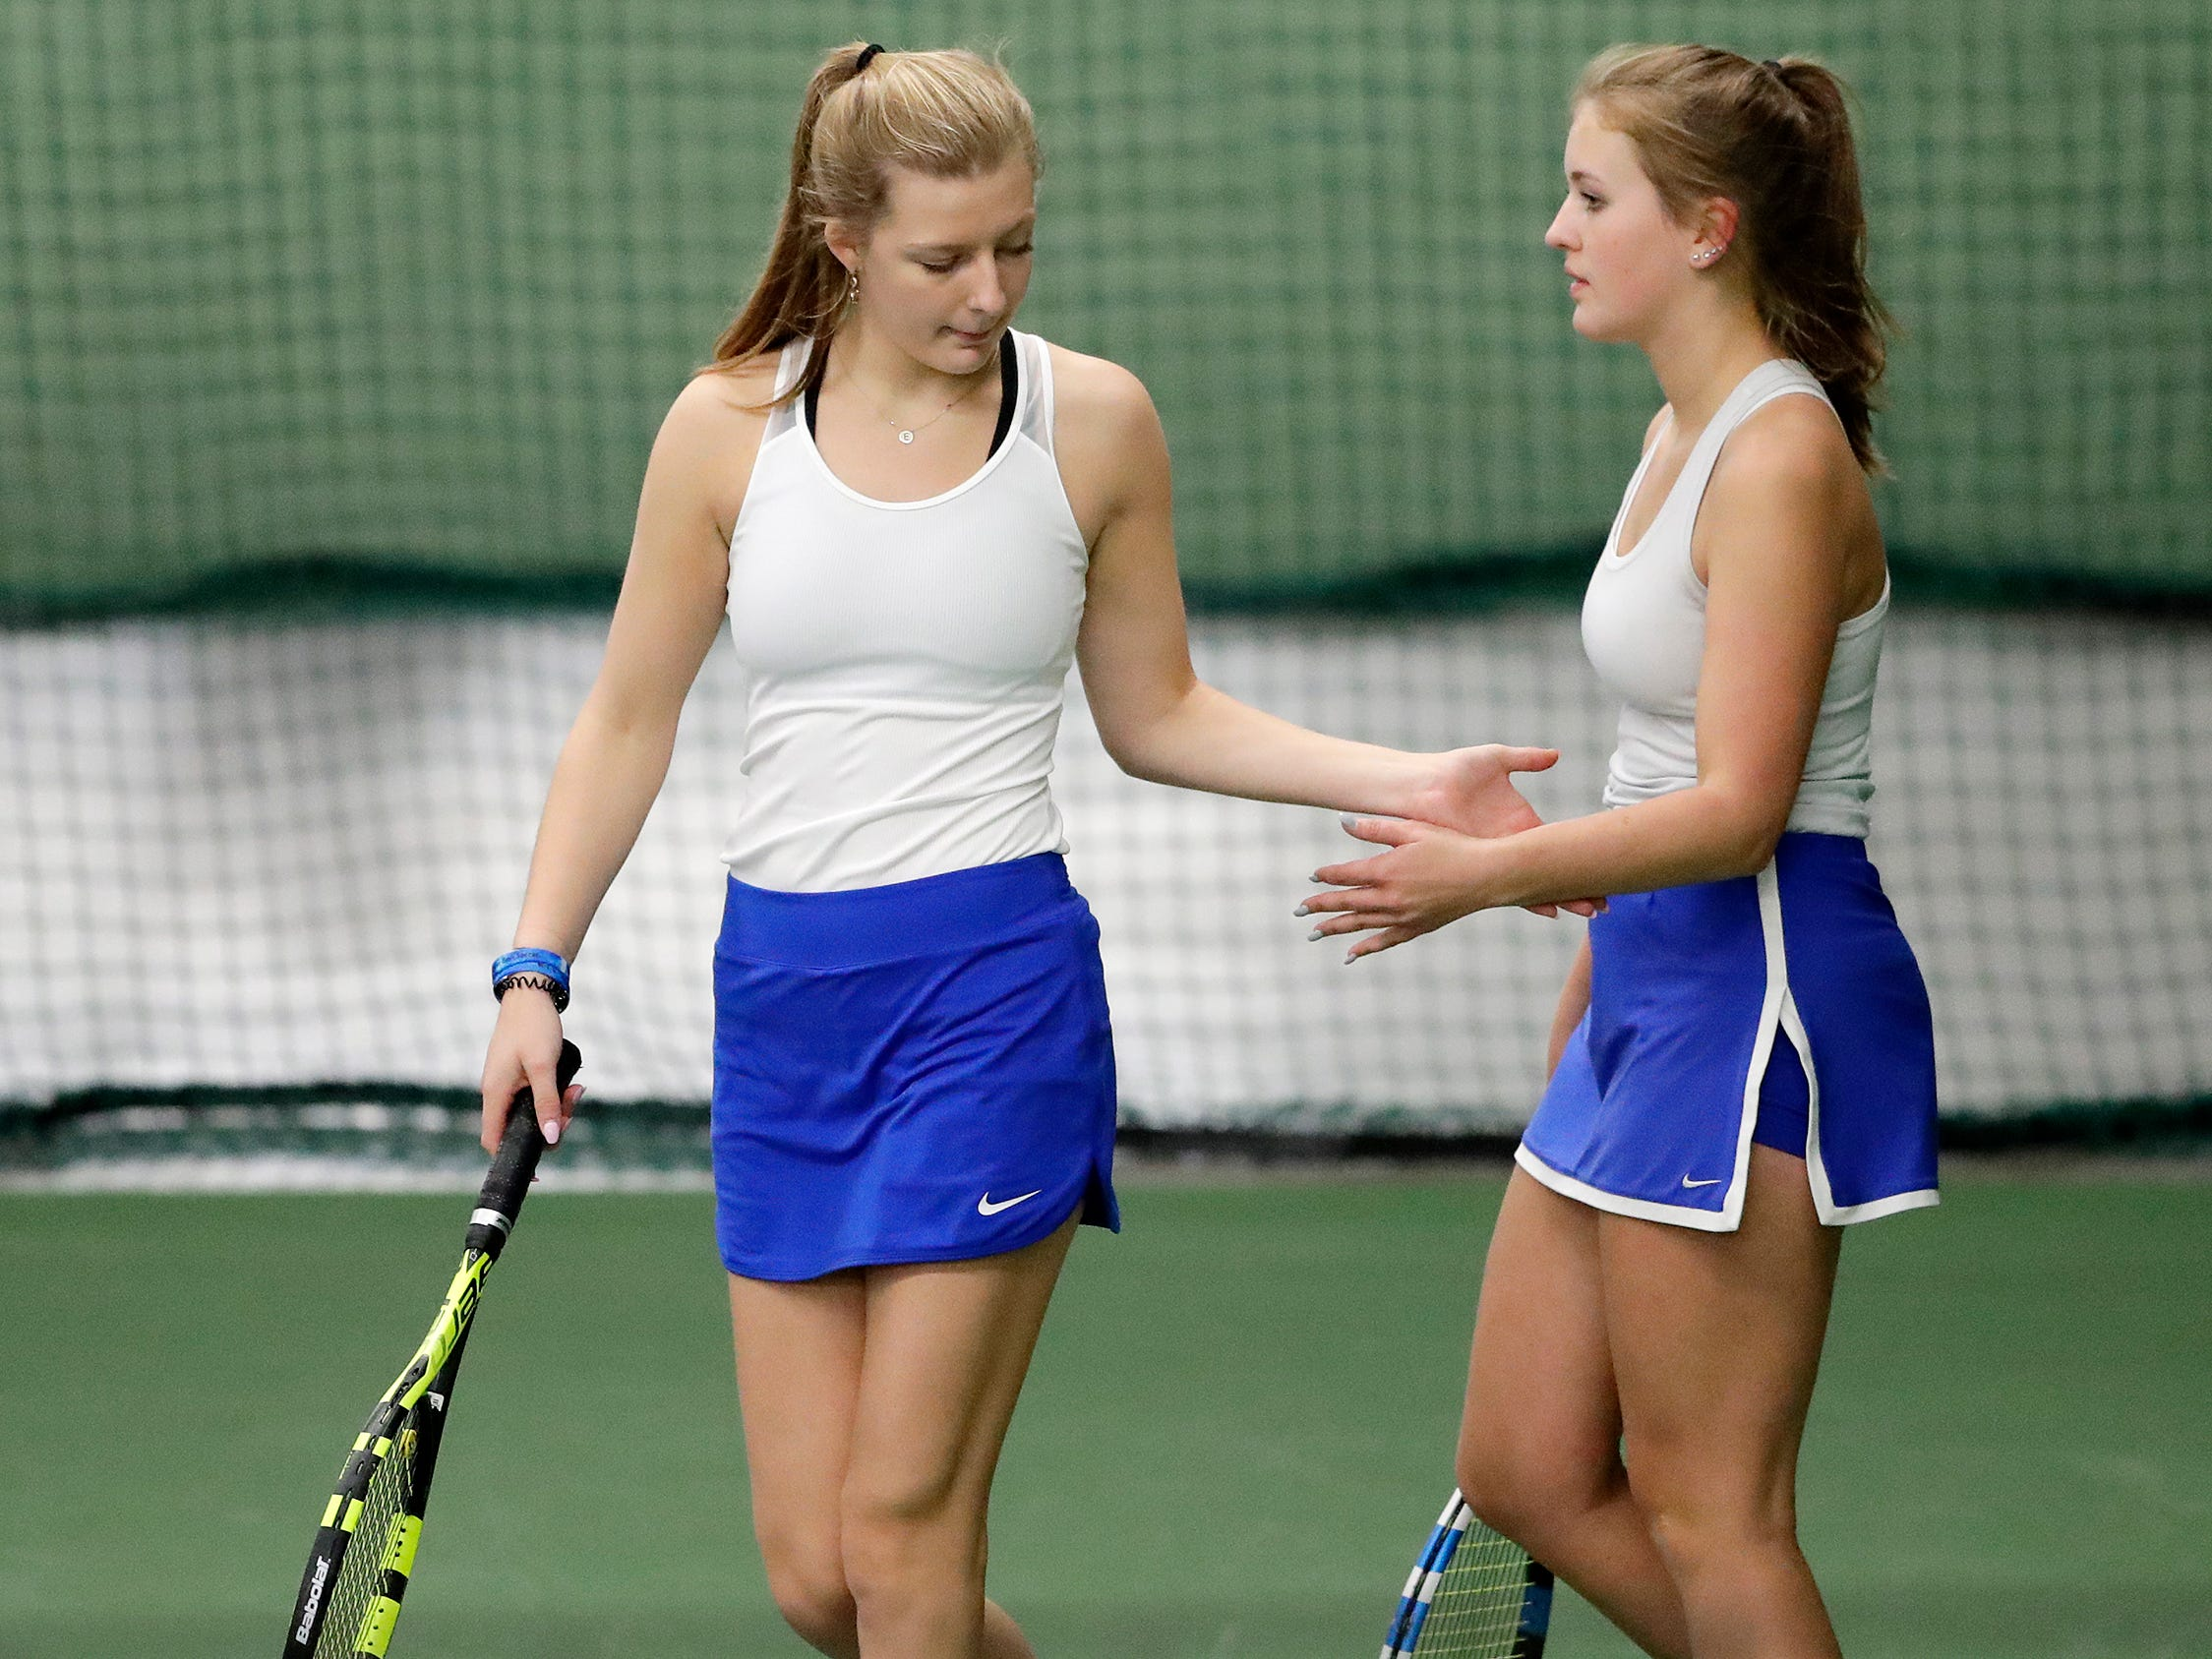 Kohler's Elly Udovich and Ava Hoffmann take the court for a Division 2 doubles match at WIAA 2018 Girls State Tennis Tournament at Nielsen Tennis Stadium on Friday, October 12, 2018 in Madison, Wis.